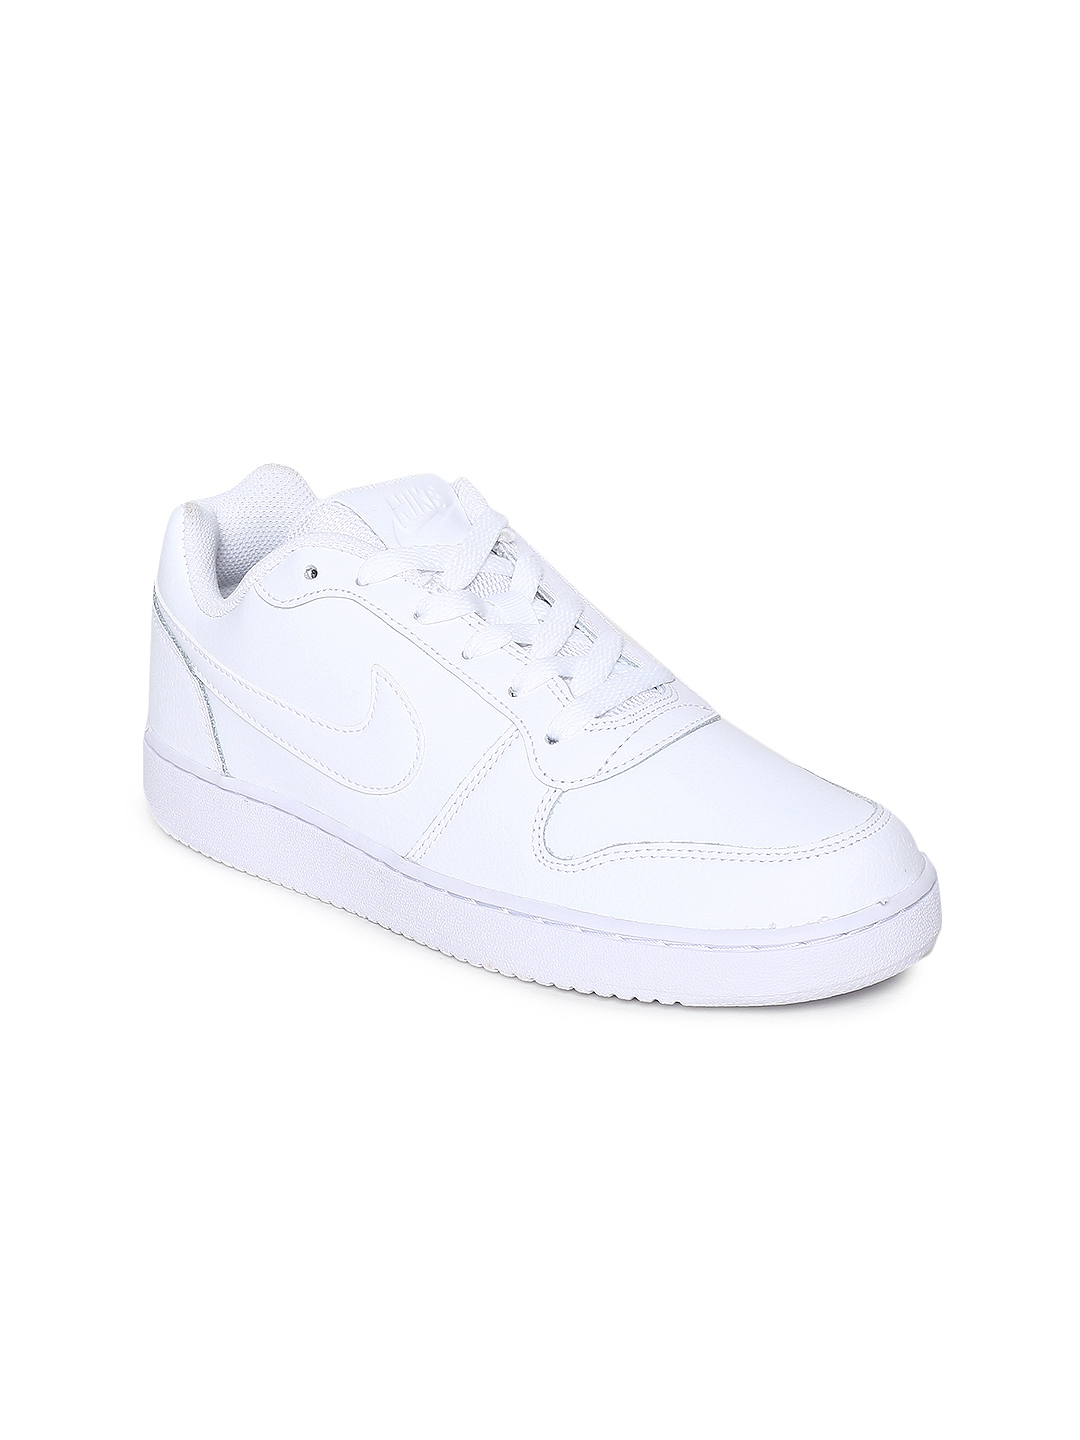 Nike Women White EBERNON LOW Sneakers